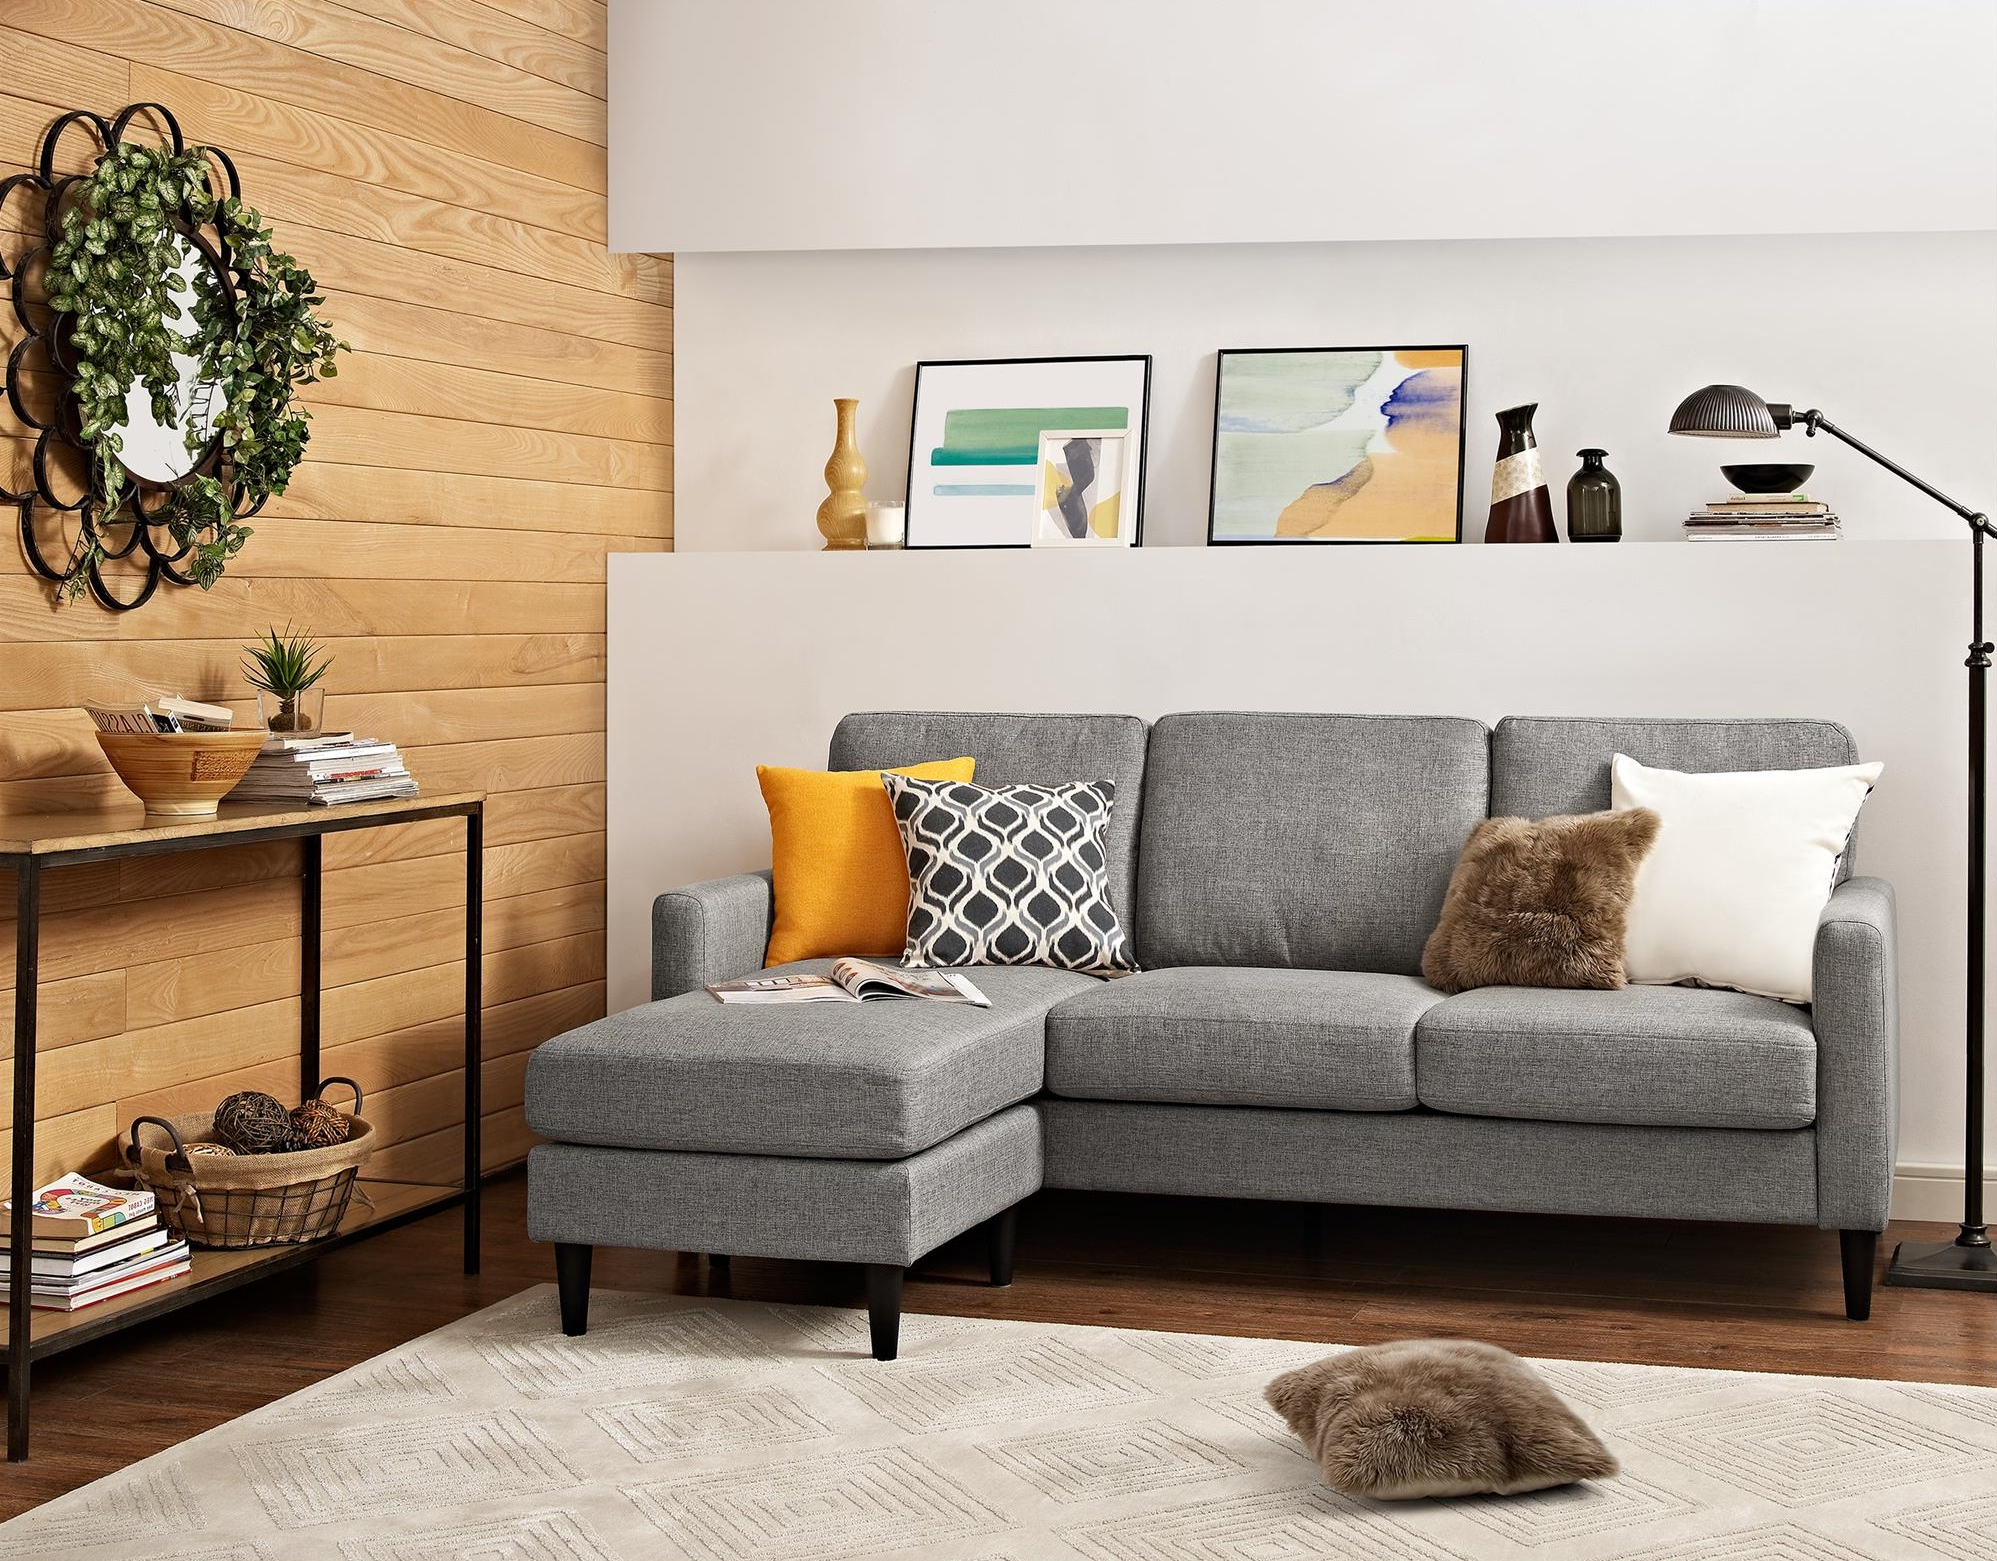 Newest Whitley 3 Piece Sectionals By Nate Berkus And Jeremiah Brent For New Savings On Hadley Nightstand, Beige (View 13 of 20)